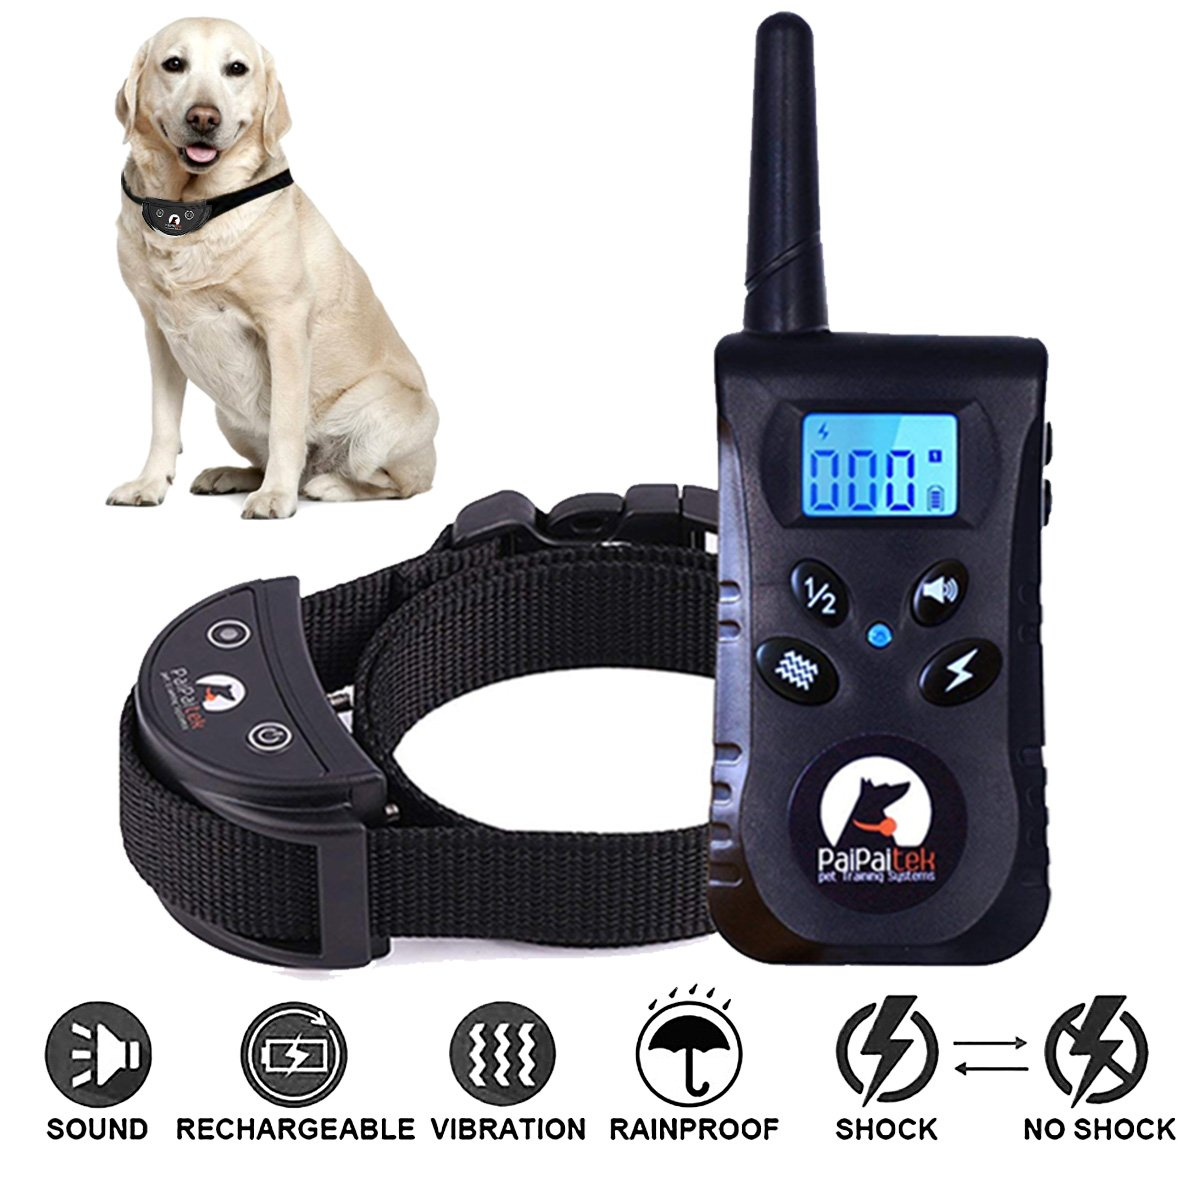 Dog Shock Collar,Dog Training Collar,Shock Collar Dogs,HerQueen Hihamer Small Medium Large Pet Remote(2018 Upgraded) 1800fts